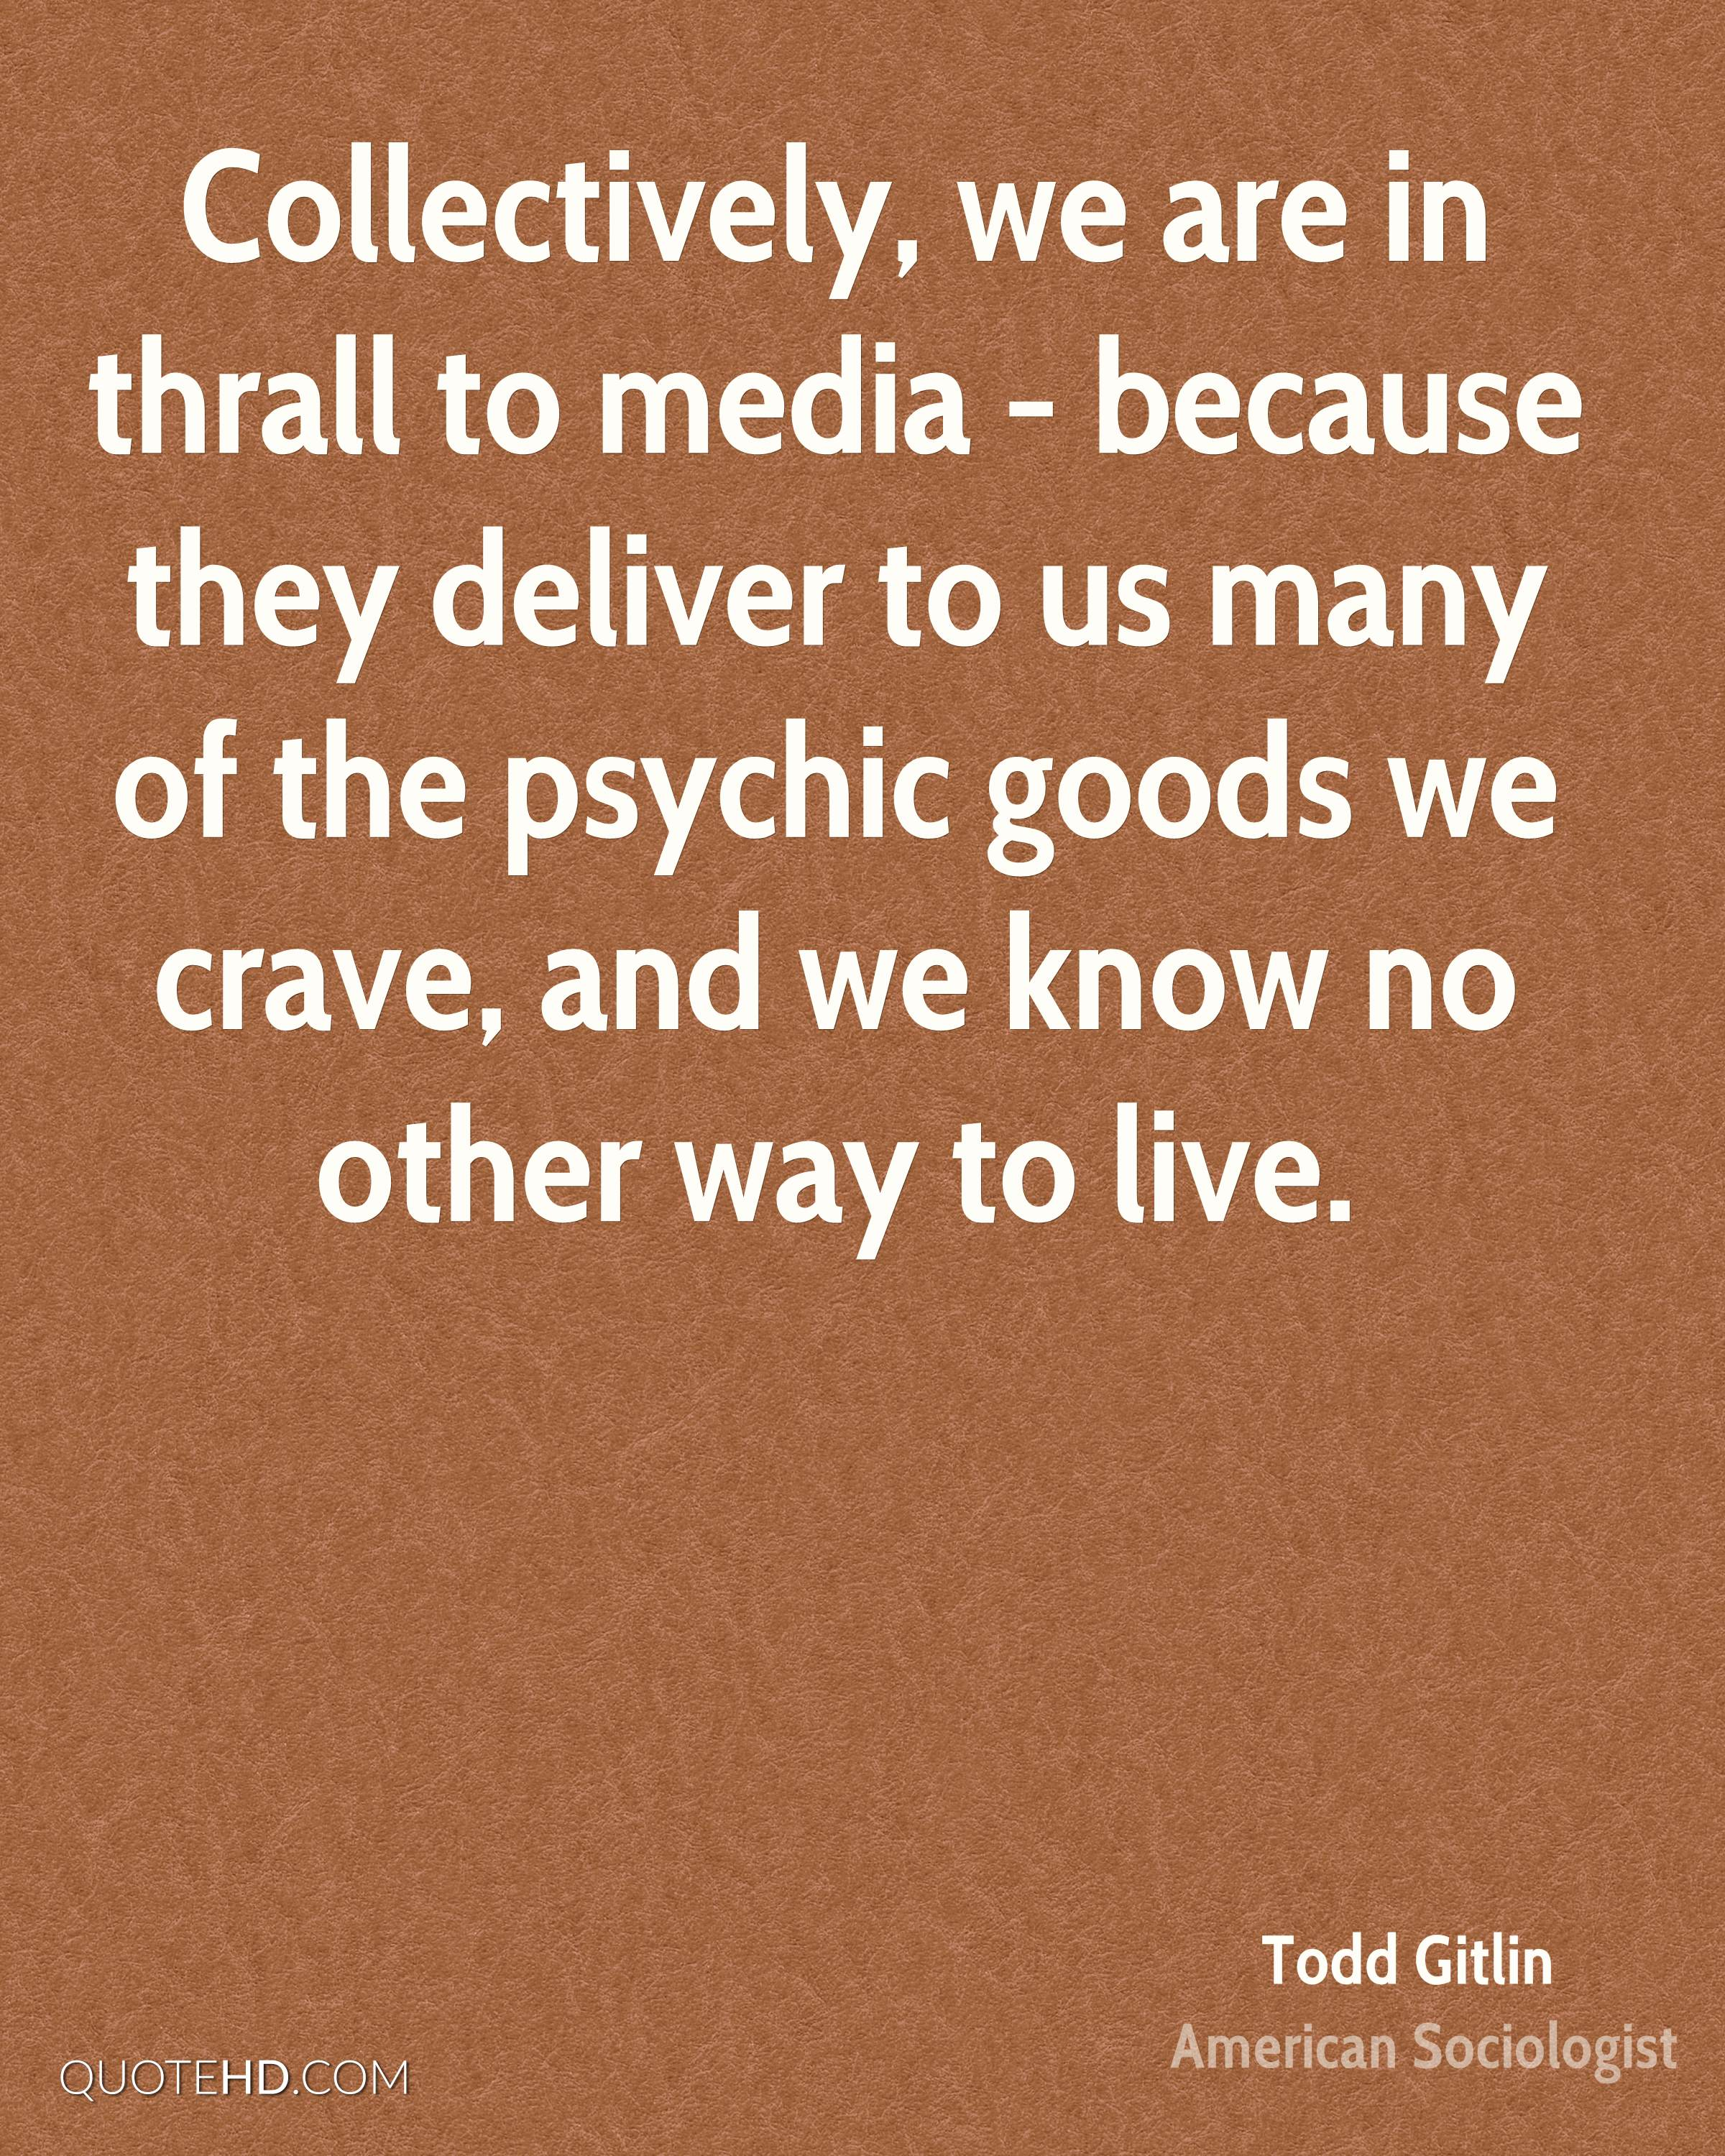 Collectively, we are in thrall to media - because they deliver to us many of the psychic goods we crave, and we know no other way to live.